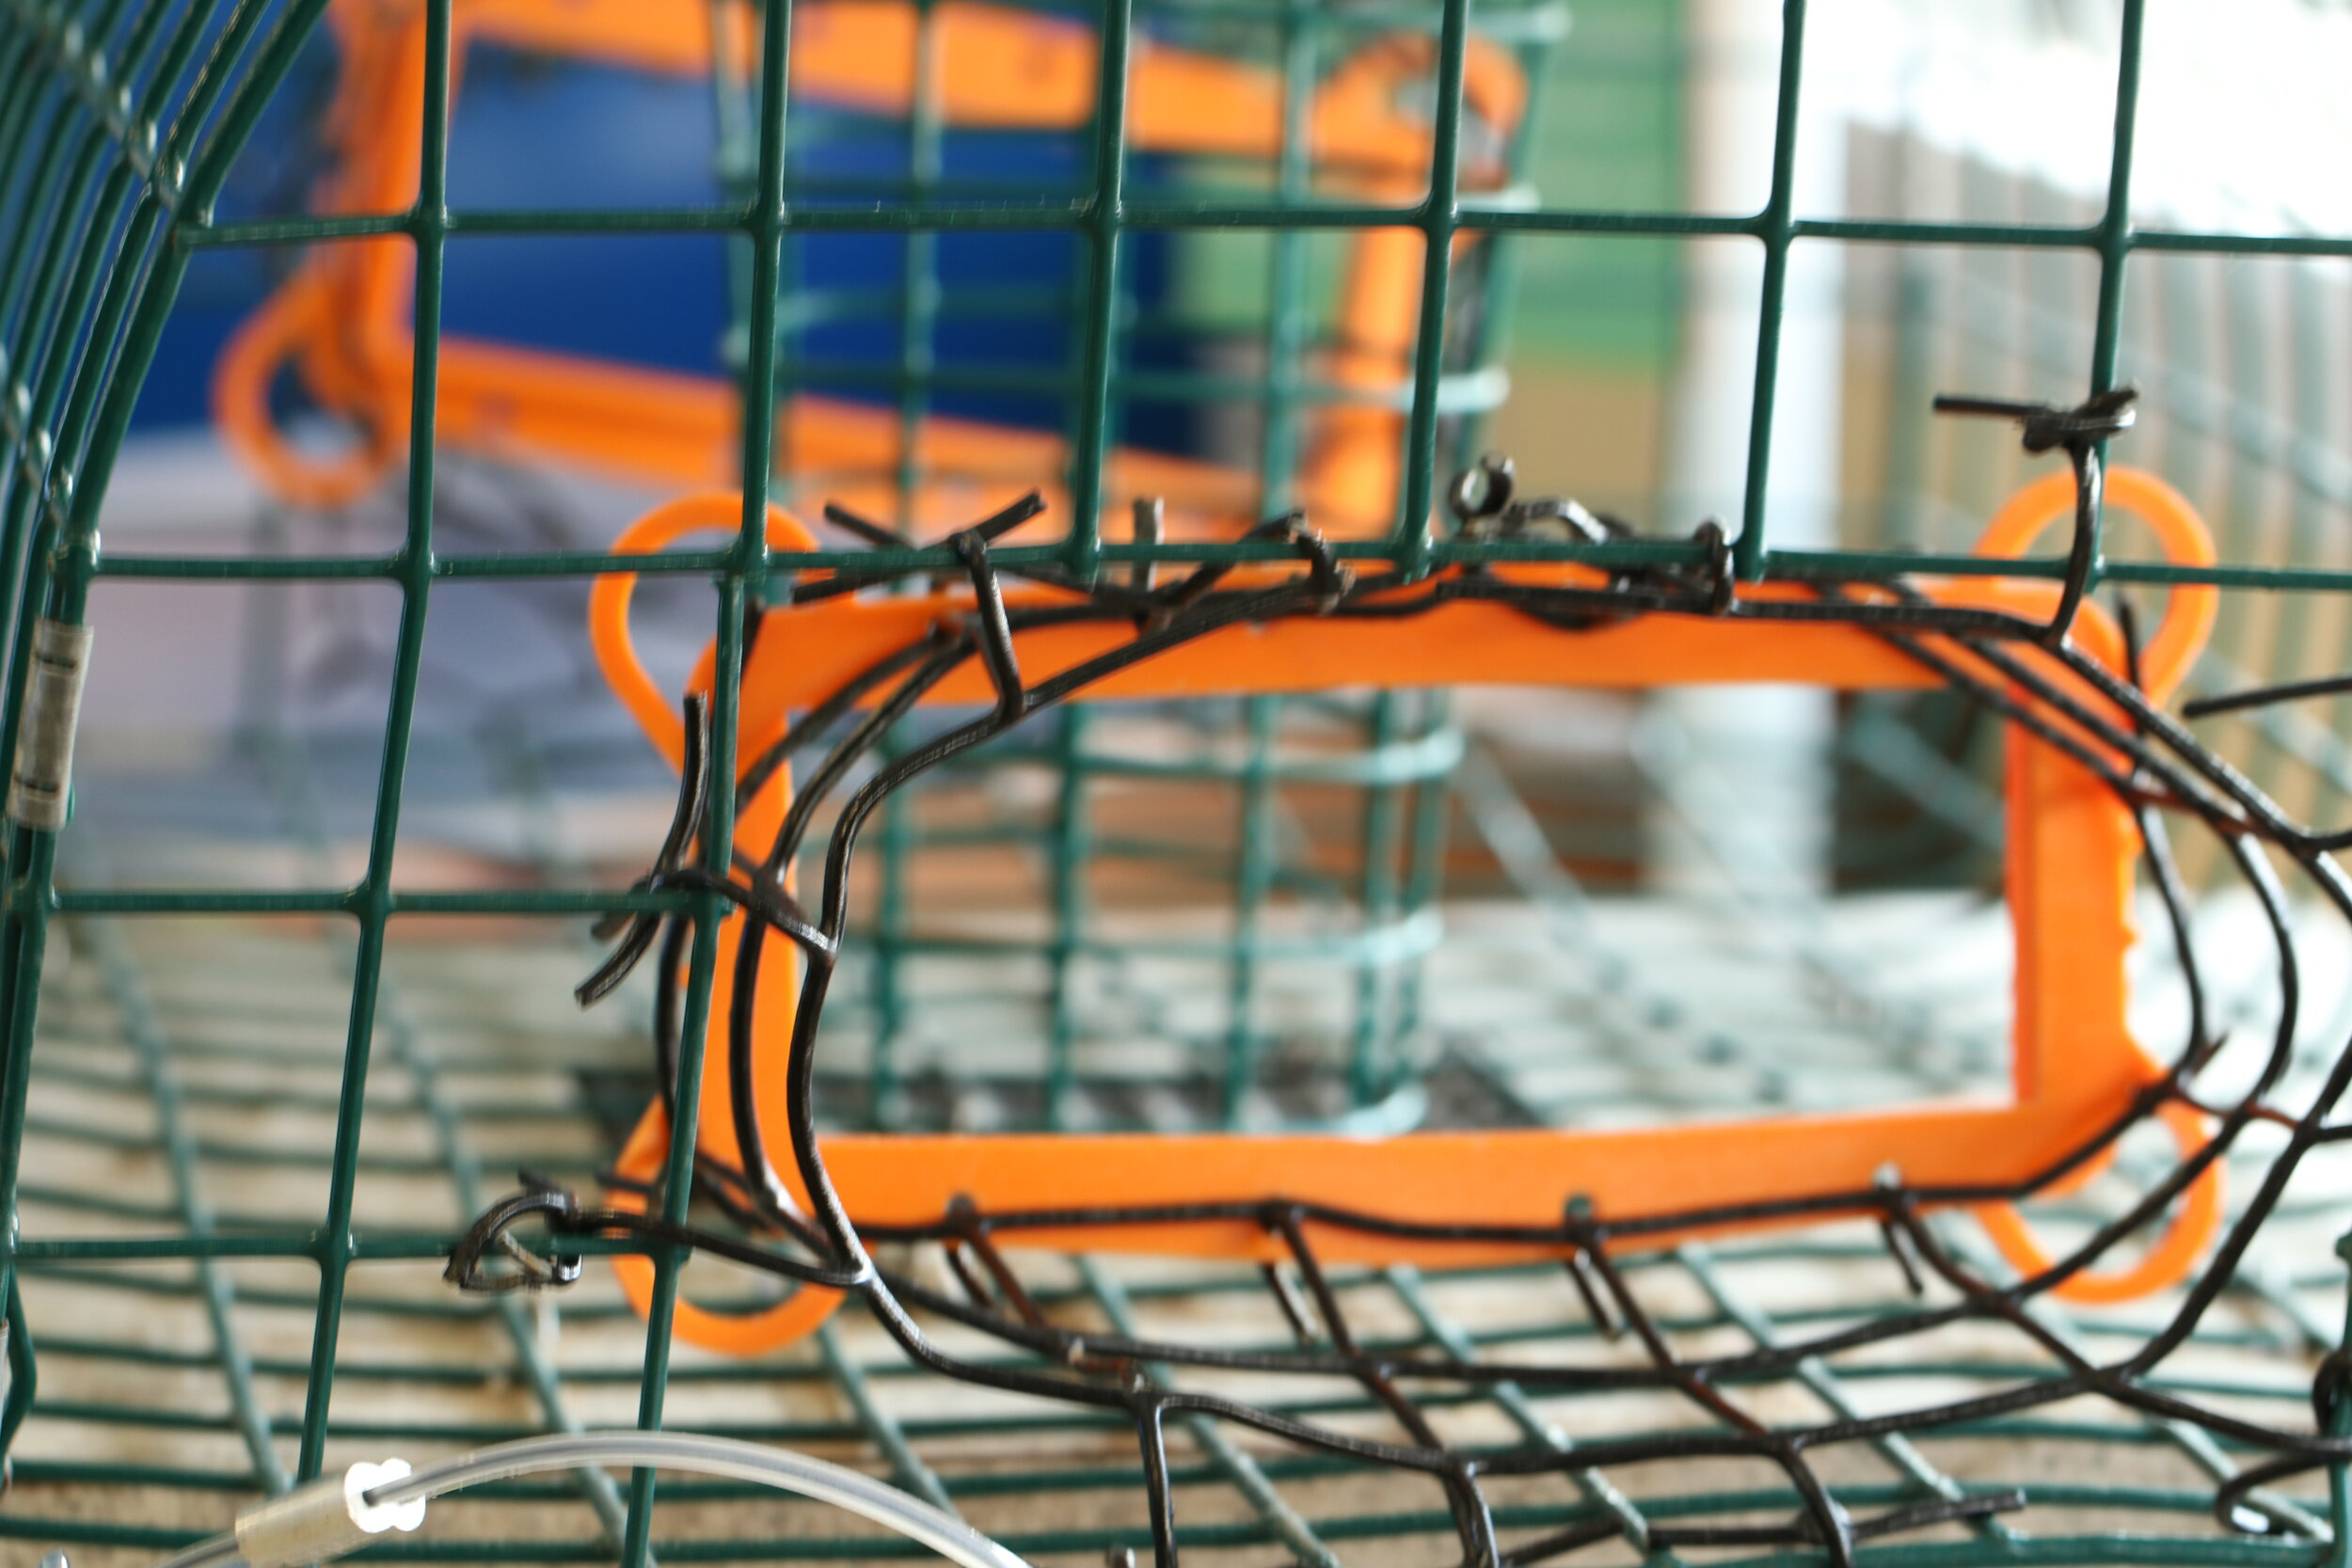 A Bycatch Reduction Device attached to a crab trap to help stop terrapins from entering into a trap and drowning.